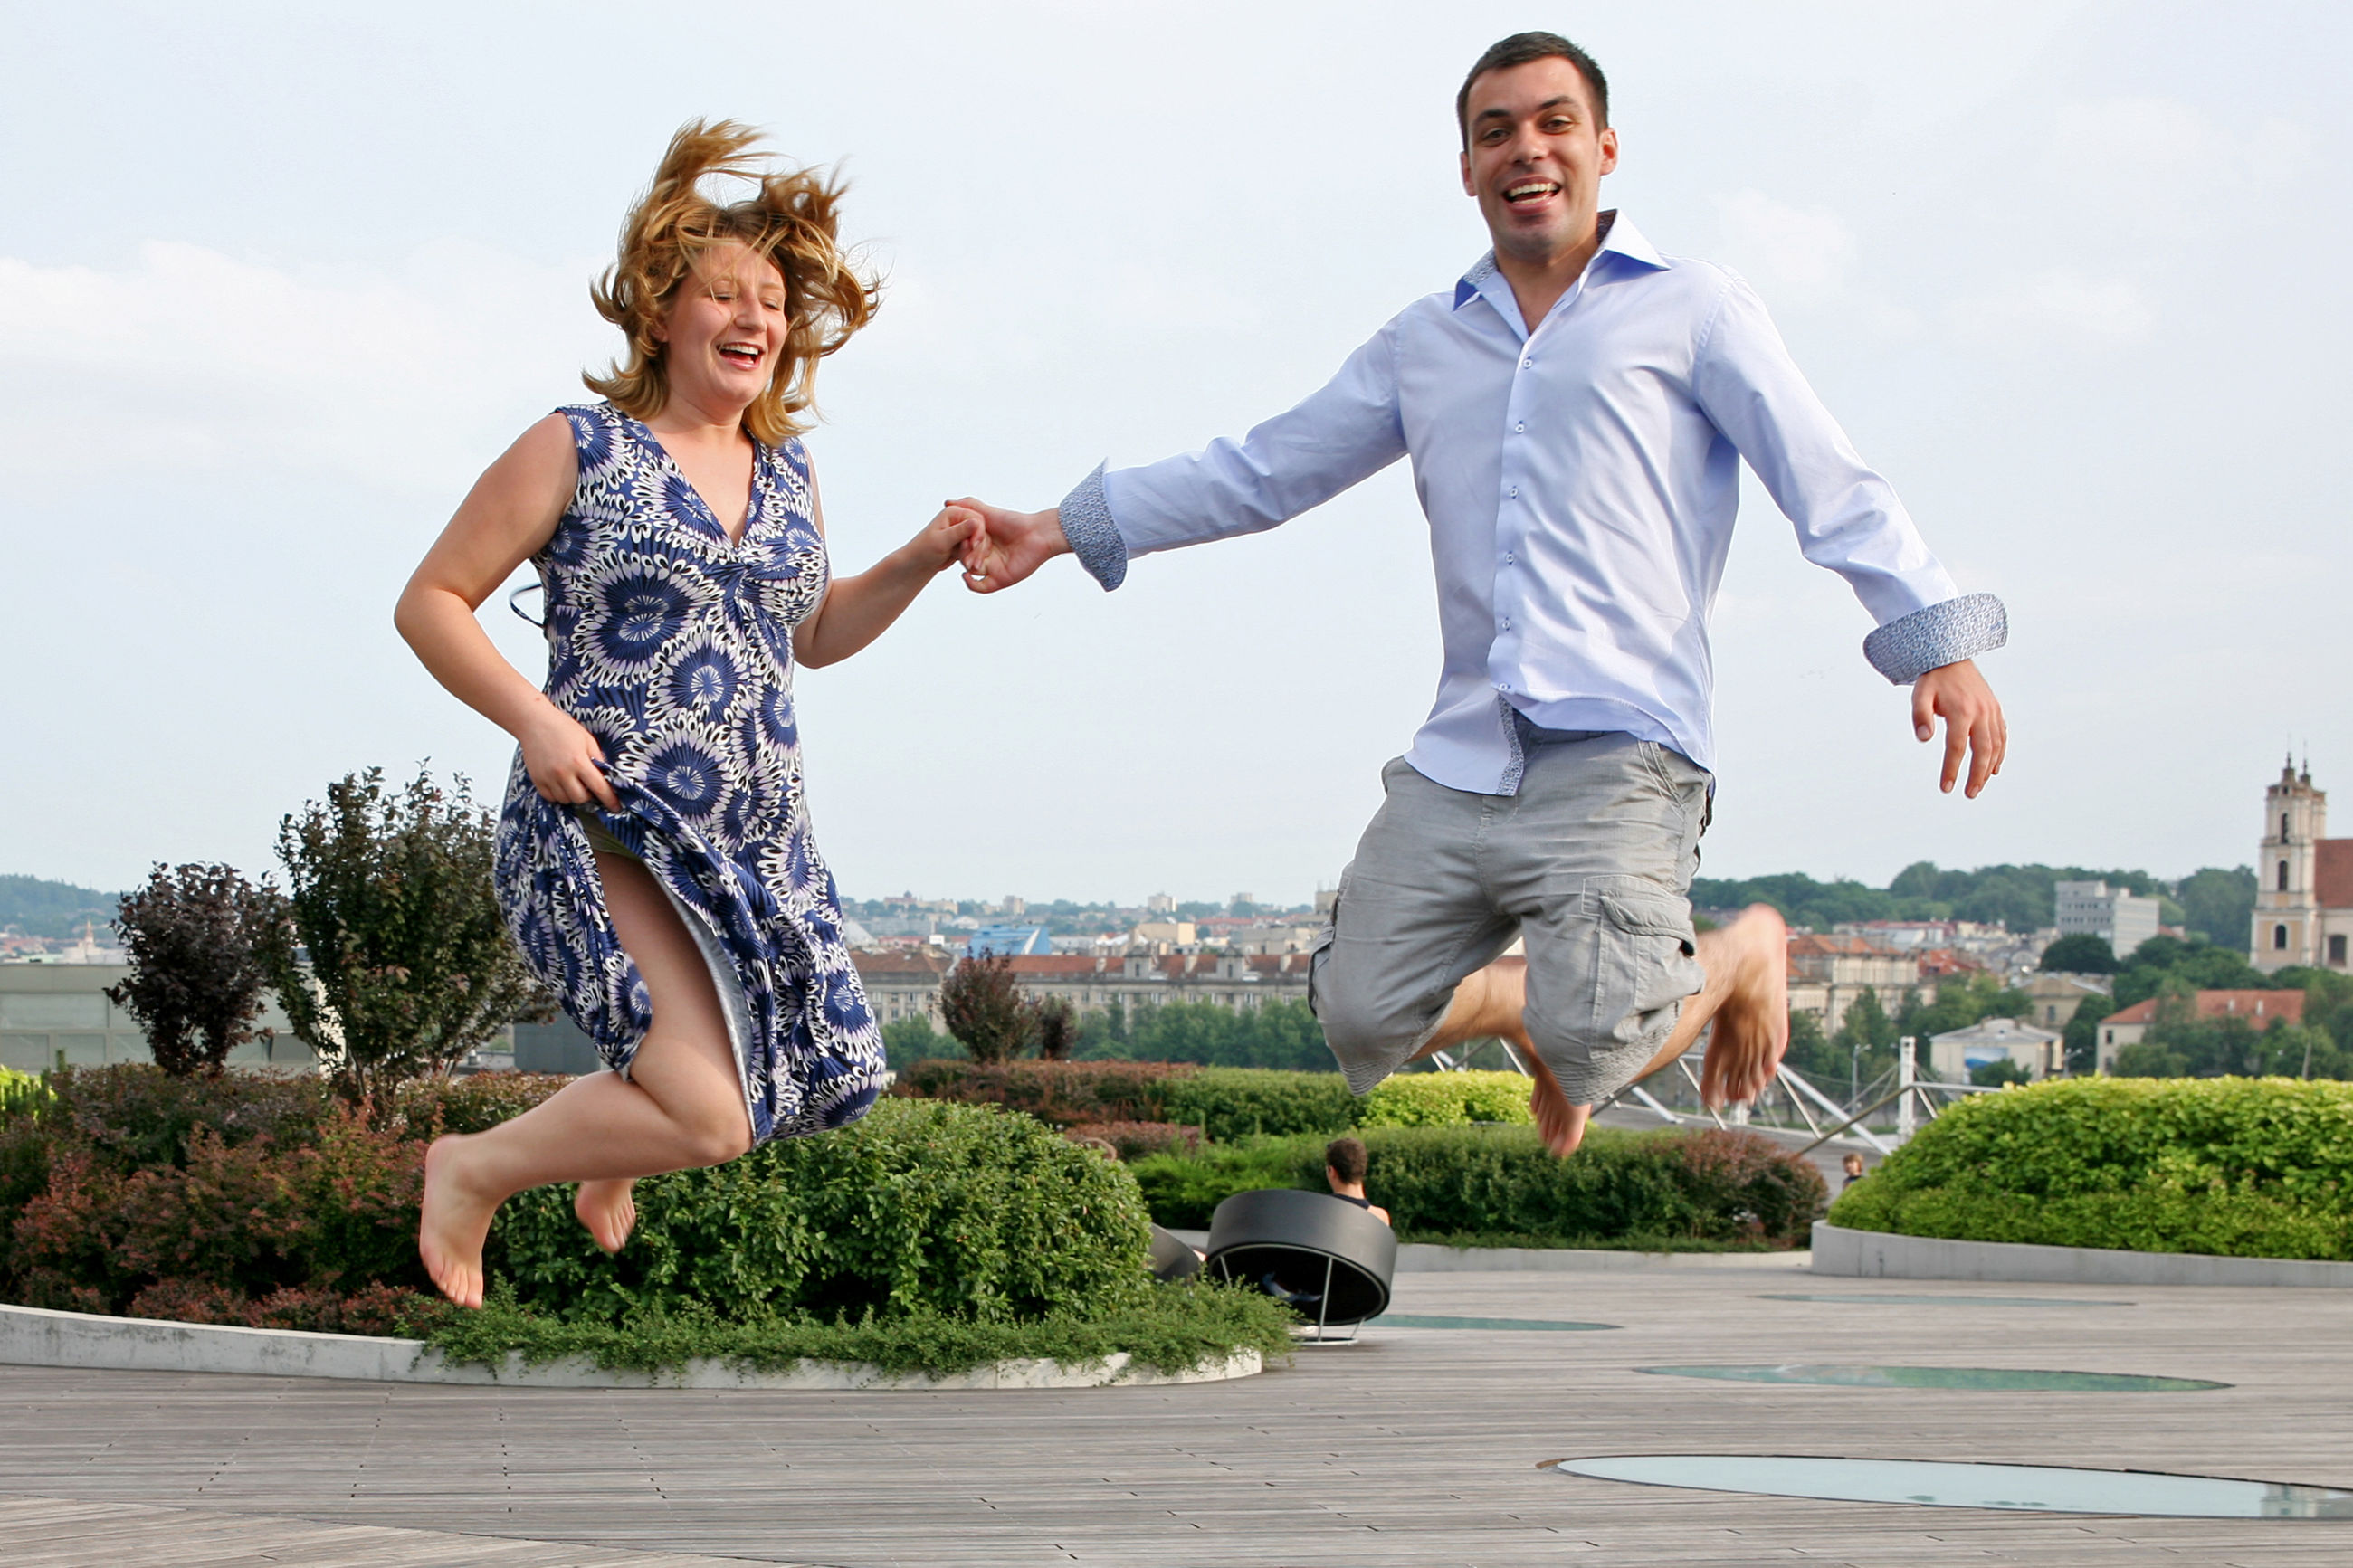 full length, leisure activity, casual clothing, real people, happiness, two people, smiling, fun, togetherness, lifestyles, jumping, mid-air, outdoors, day, young adult, mature men, young men, mature women, young women, enjoyment, architecture, playing, built structure, sky, bonding, childhood, tree, nature